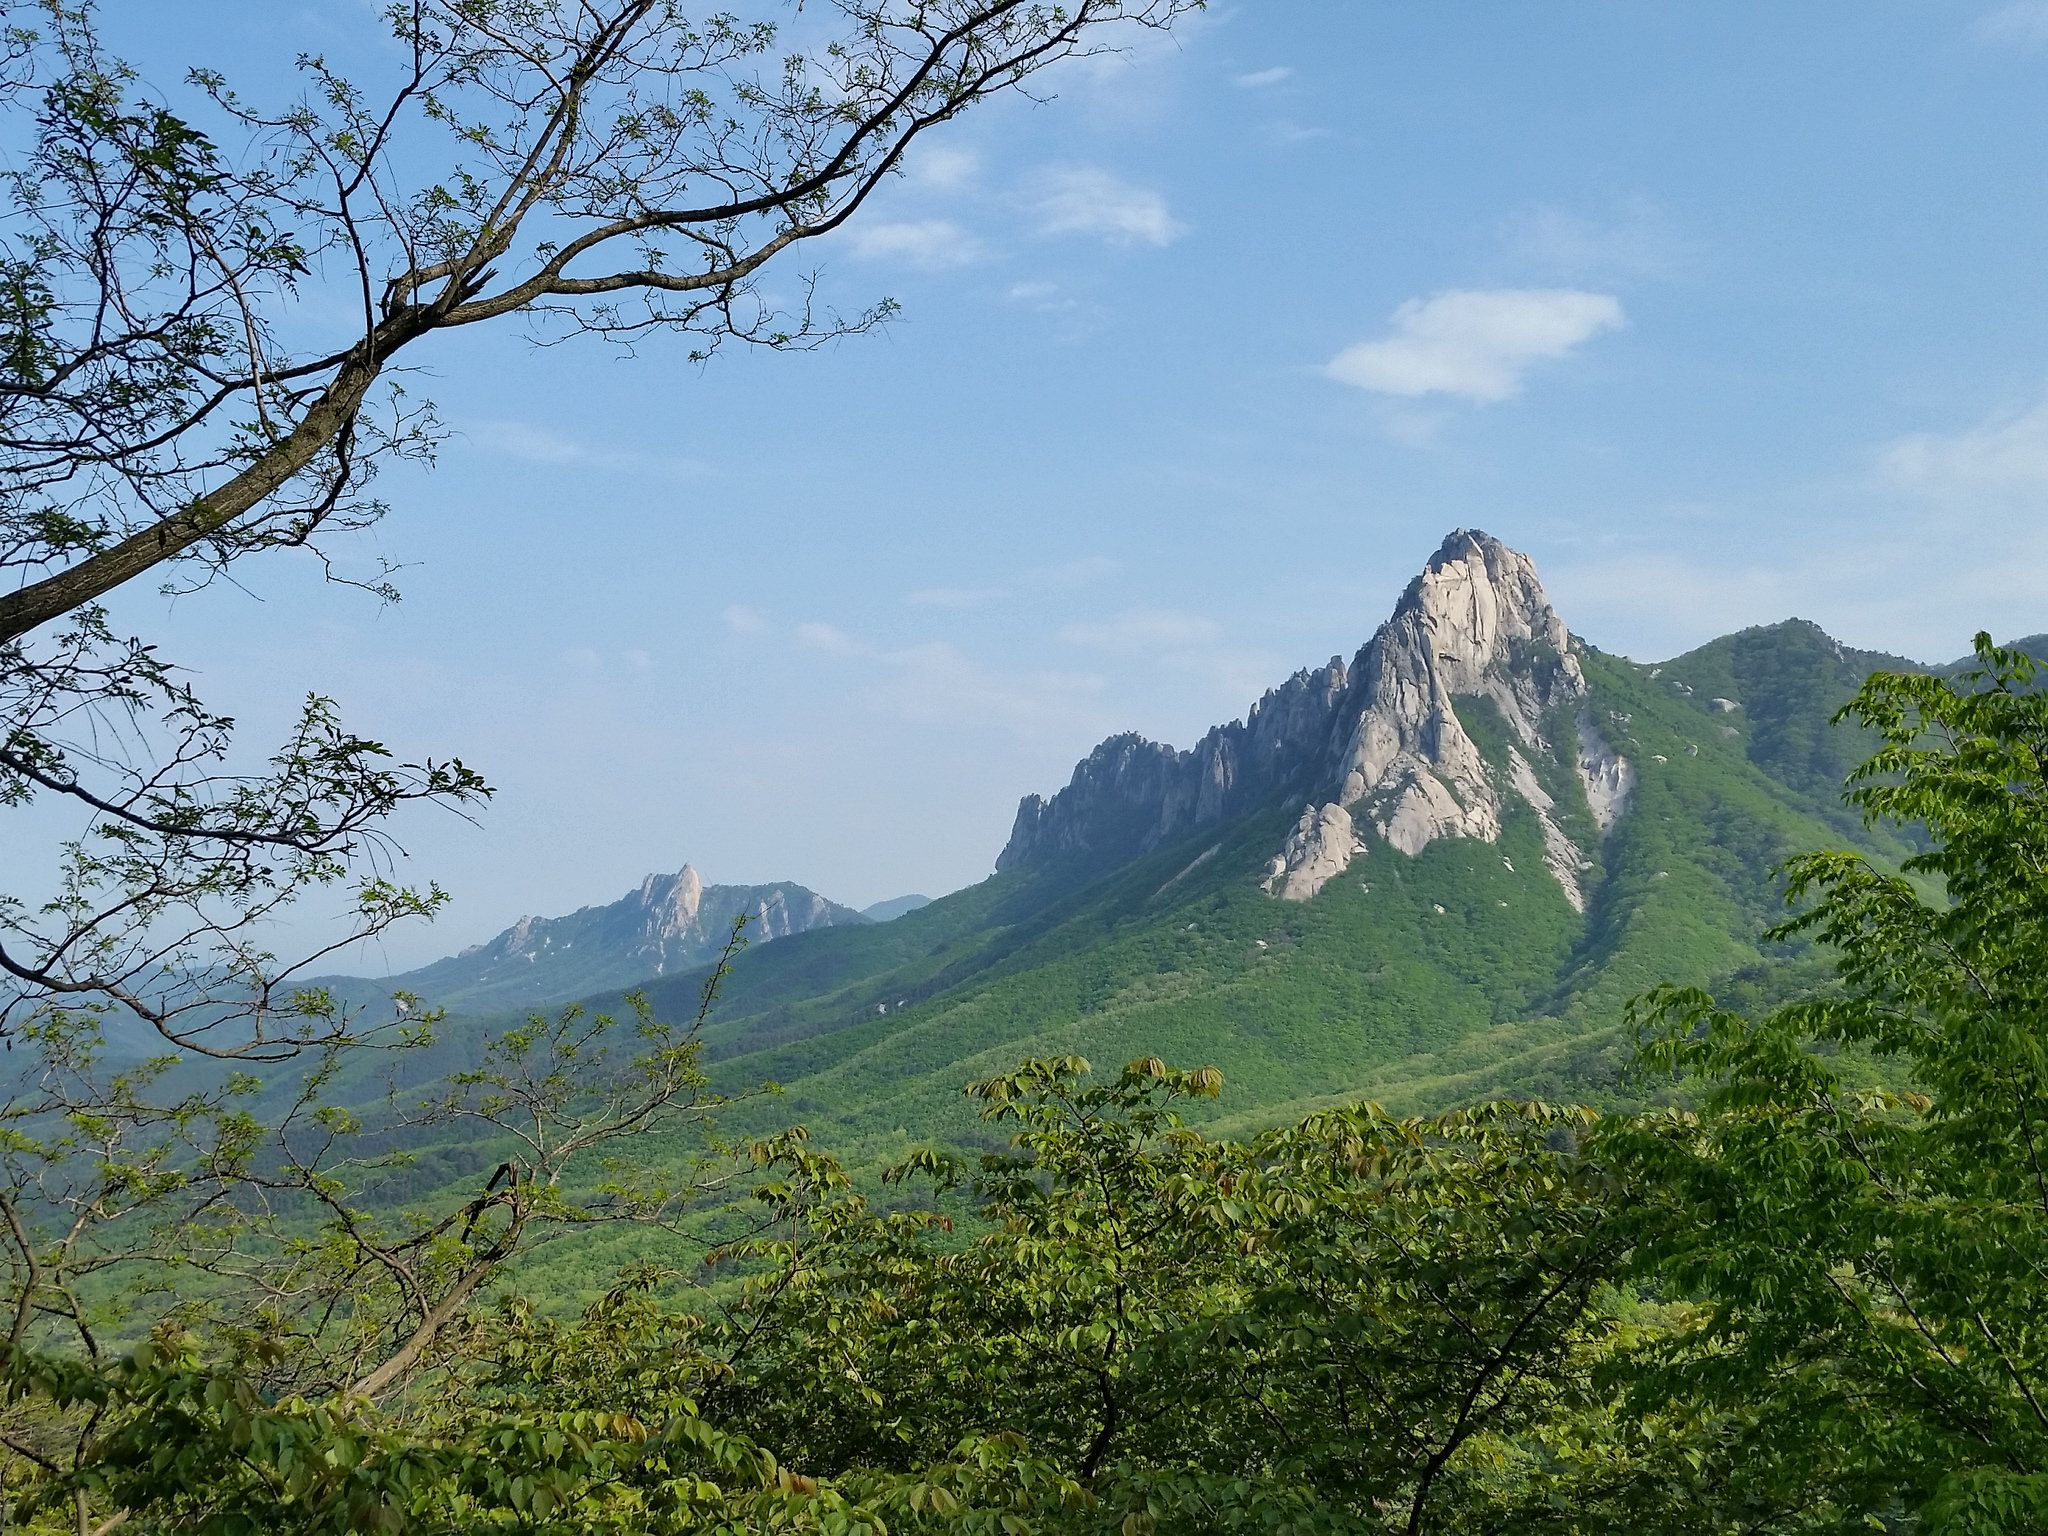 #Ulsanbawi Rock as seen from the #Misiryeong Ridge | Goseong, Gangwon Province, Korea | 미시령 울산바위